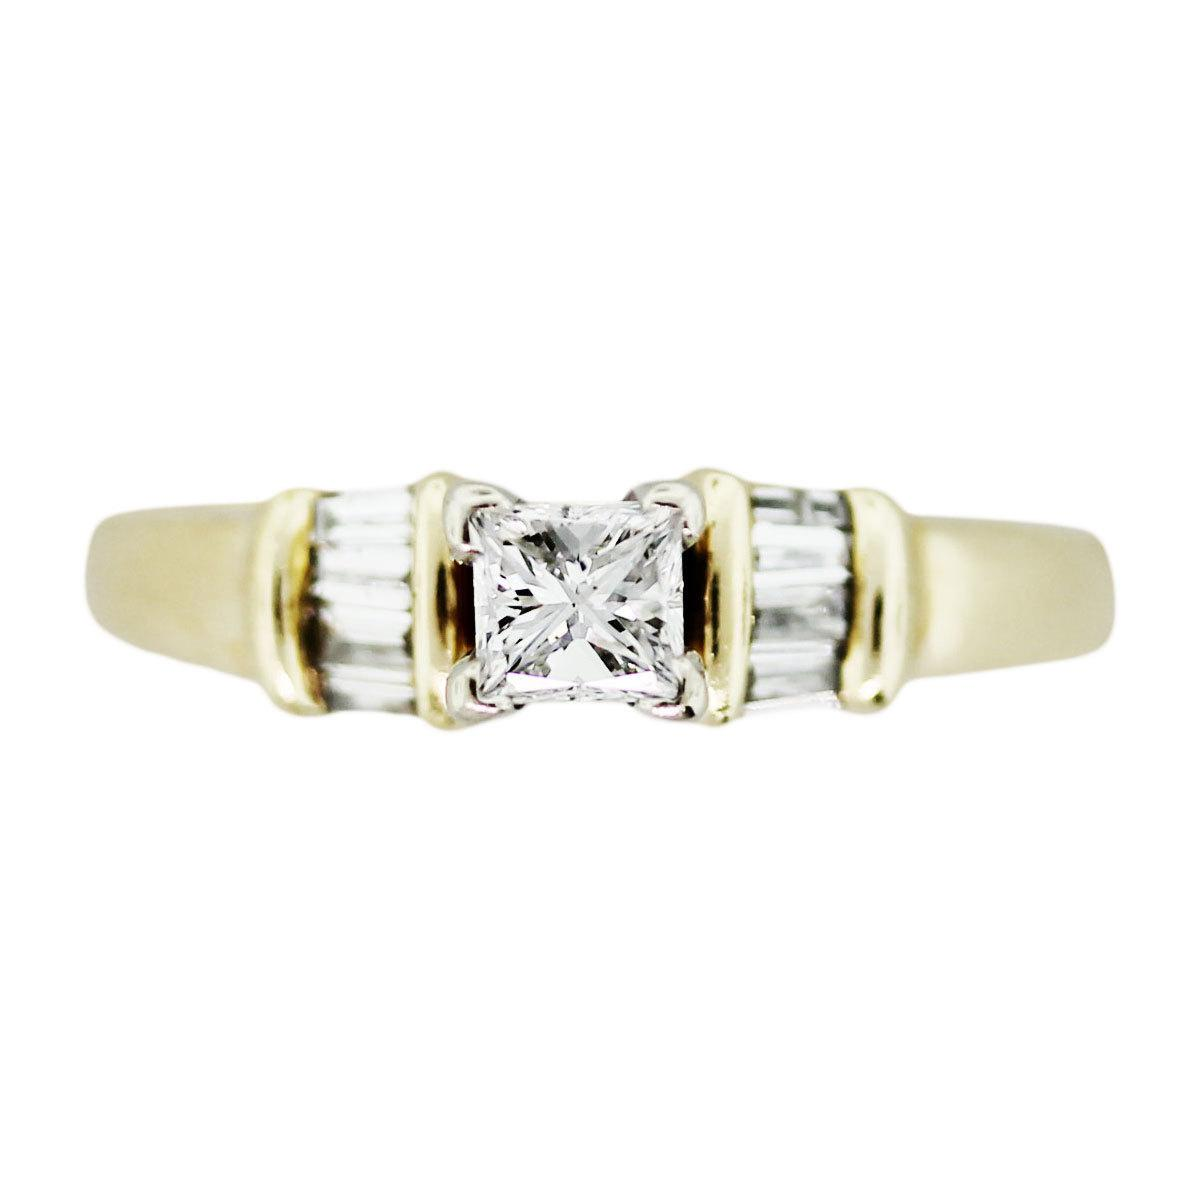 Princess cut engagement ring under 500, engagement ring under 1000